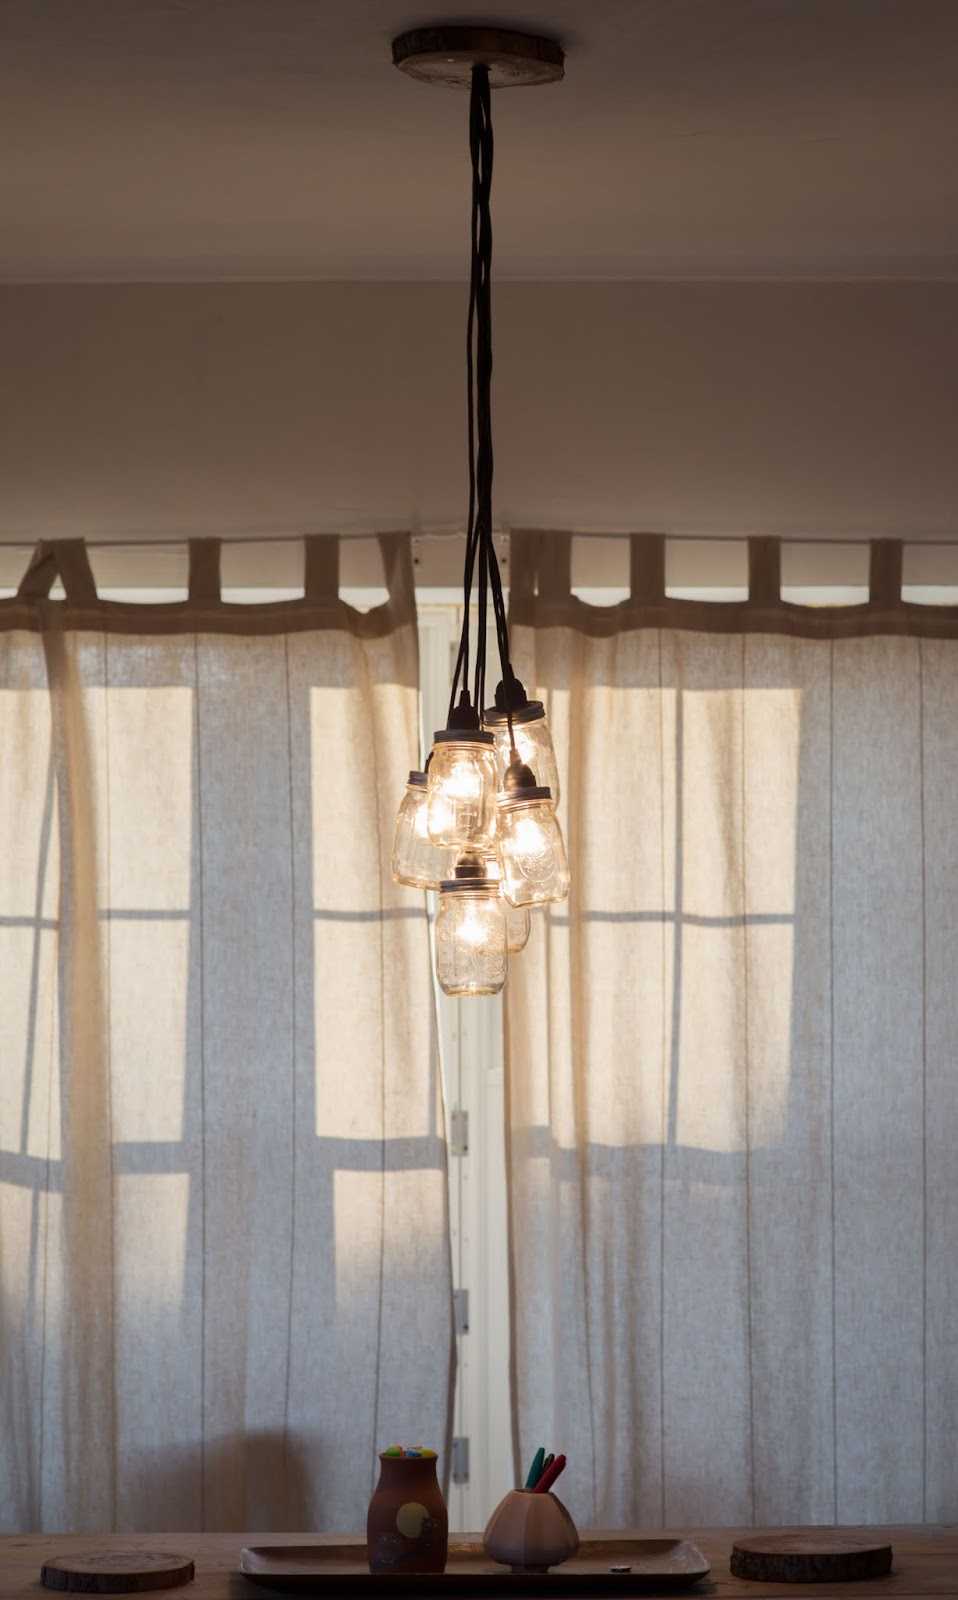 Mason Jar Chandelier DIY - Little Lady Little City